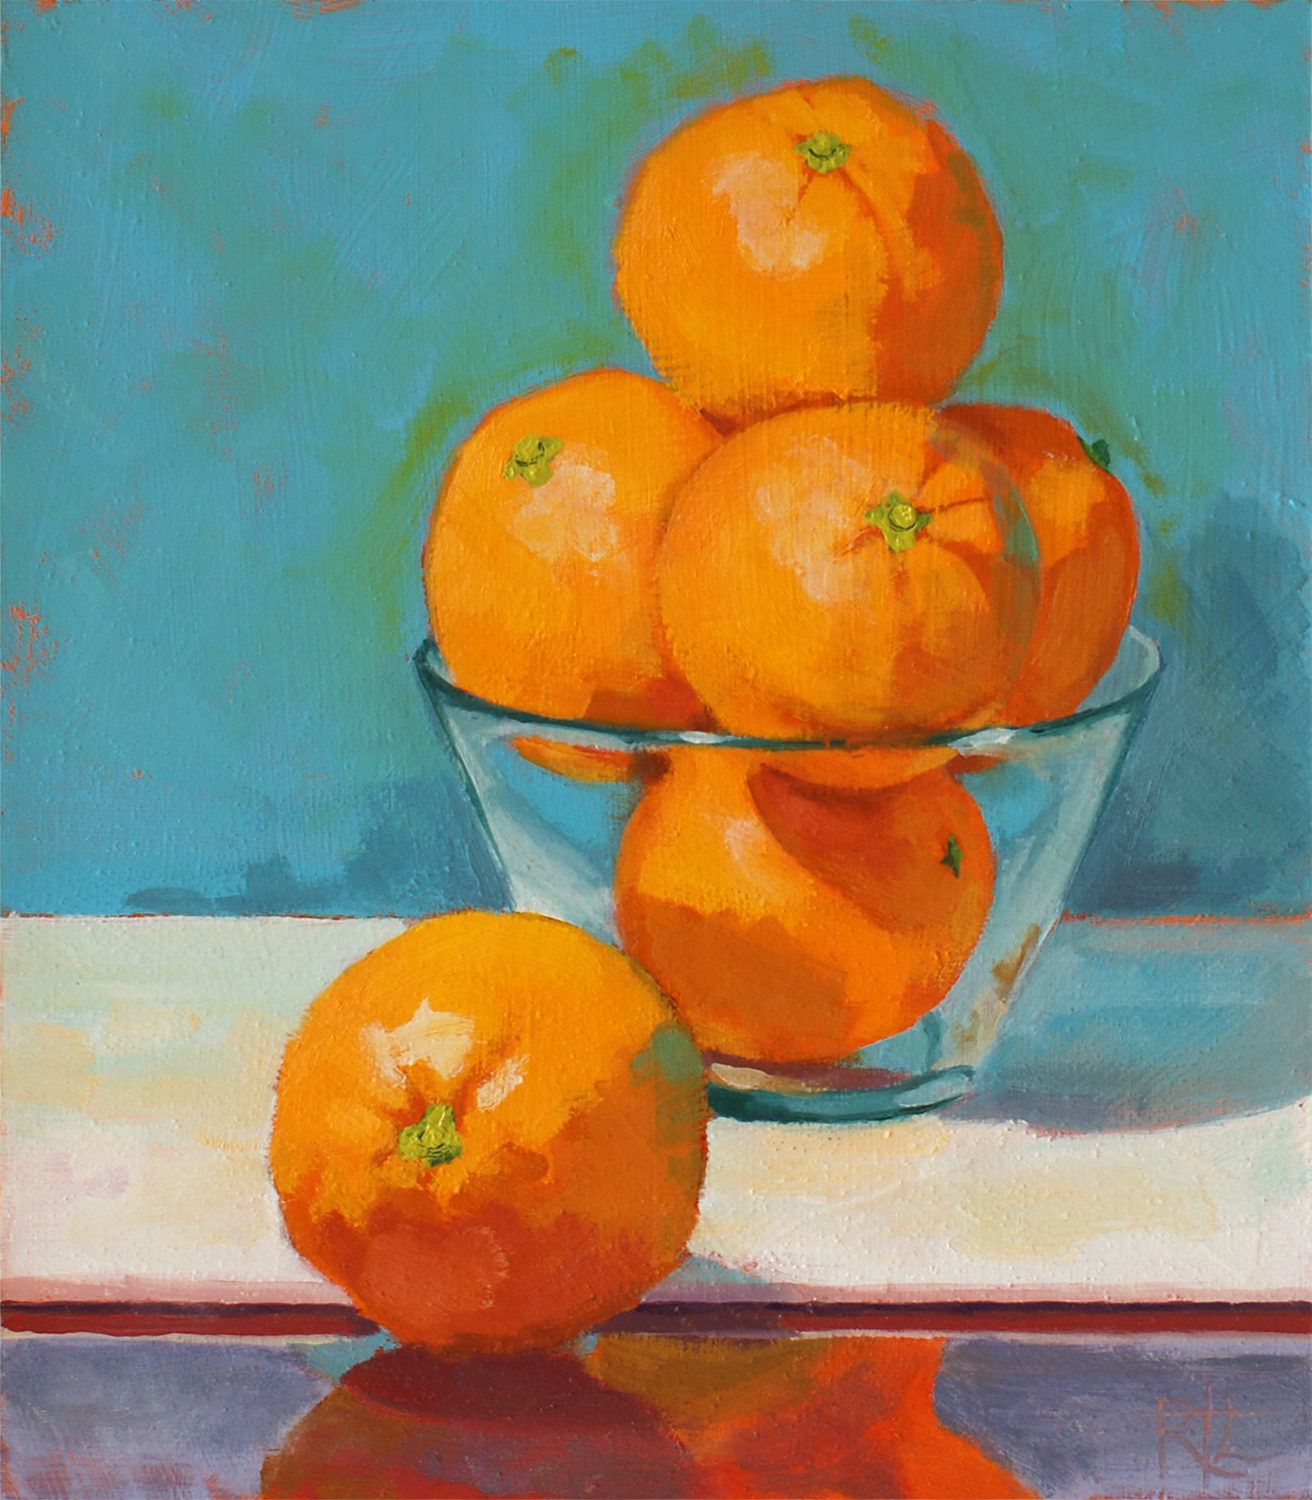 Orange Over Board by Rob Lunn.